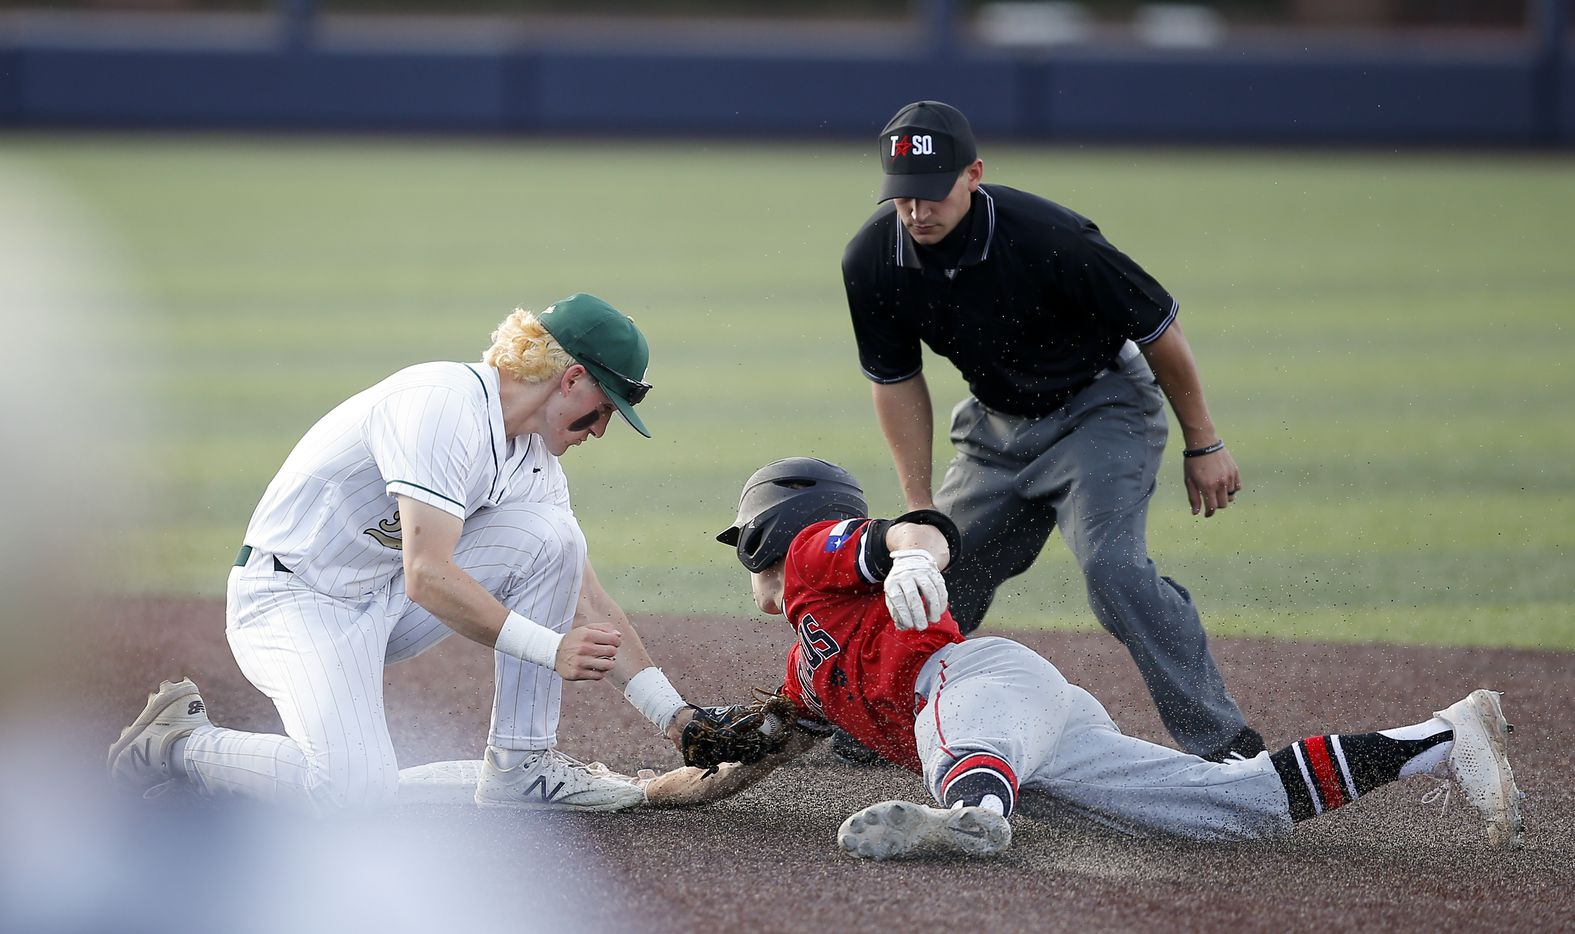 Birdville's Logan Lacey, left, is unable to make the tag as Mansfield Legacy's Easton Steenbakkers (3) slides into second during the seventh inning of a high school Class 5A Region I quarterfinal series baseball game at Dallas Baptist University, Thursday, May 20, 2021. Birdville won 2-0. (Brandon Wade/Special Contributor)